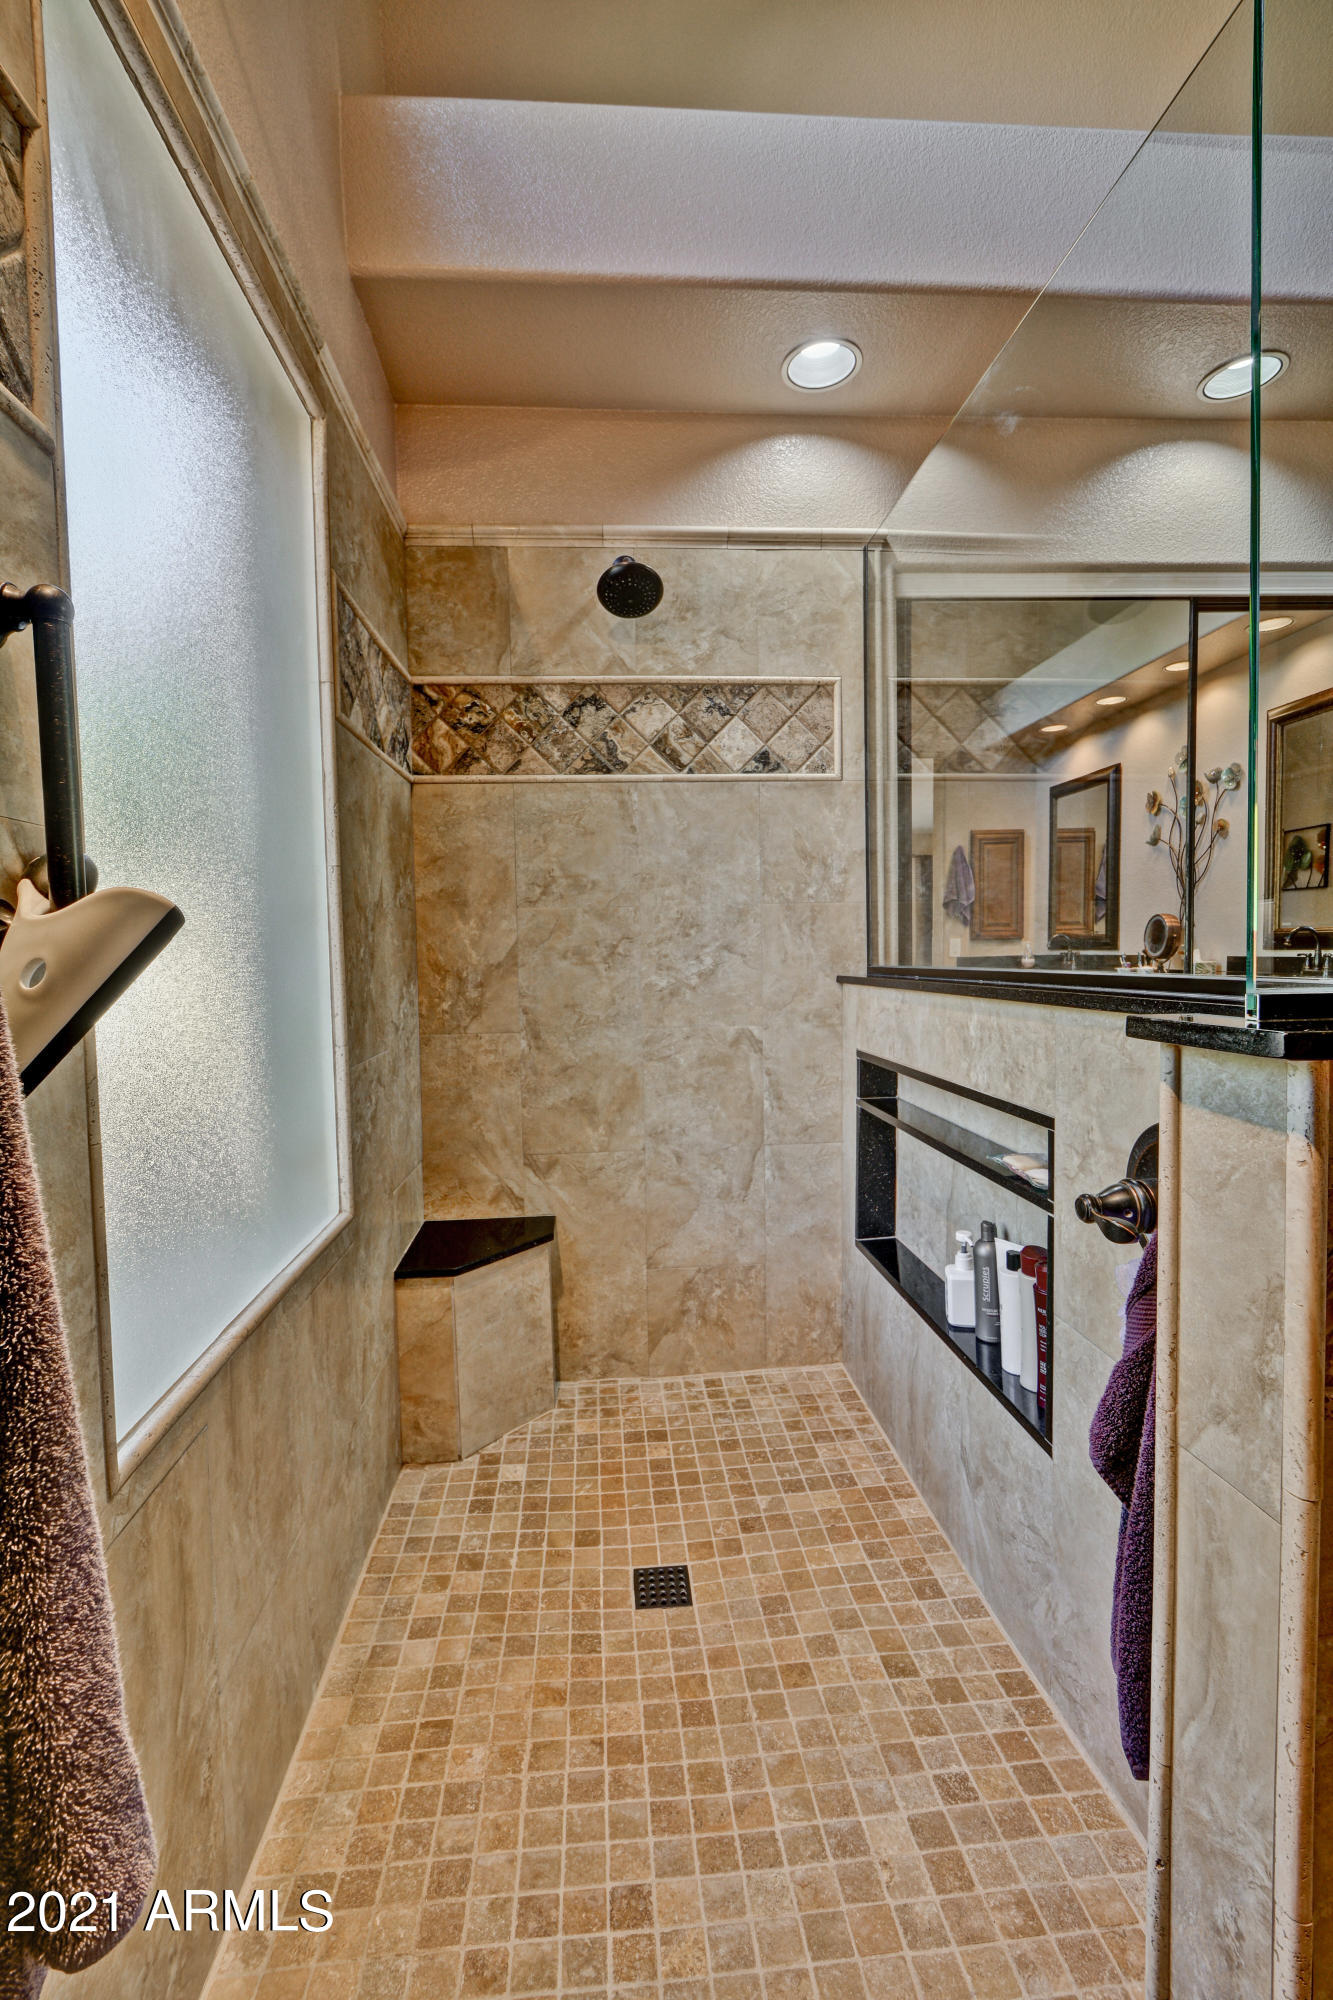 Another shower view